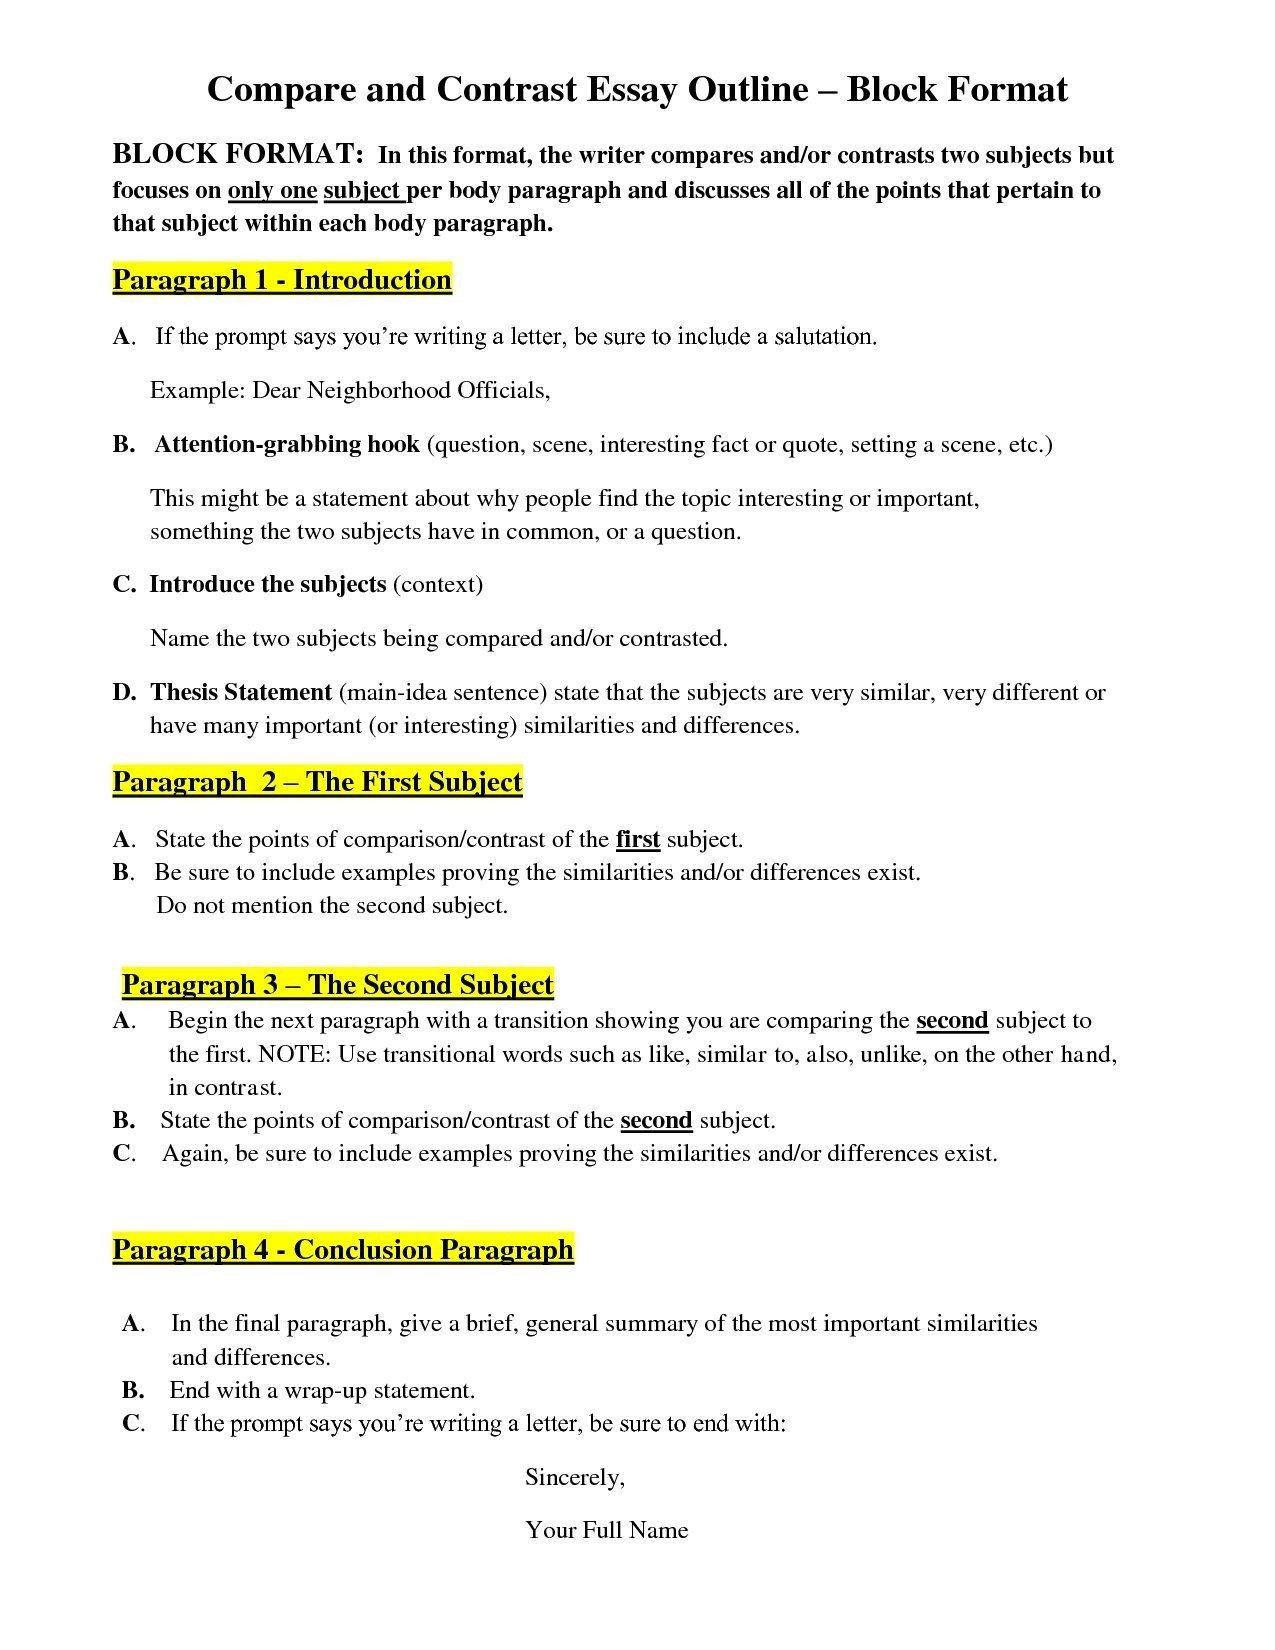 014 Essay Examplempare Andntrastmparison Best Examples Of Scenario In 6th Grade An Goo 3rd Food 5th Middle School Block Format Pdf High 4th Vs Striking Compare And Contrast Example Topics 9th Full